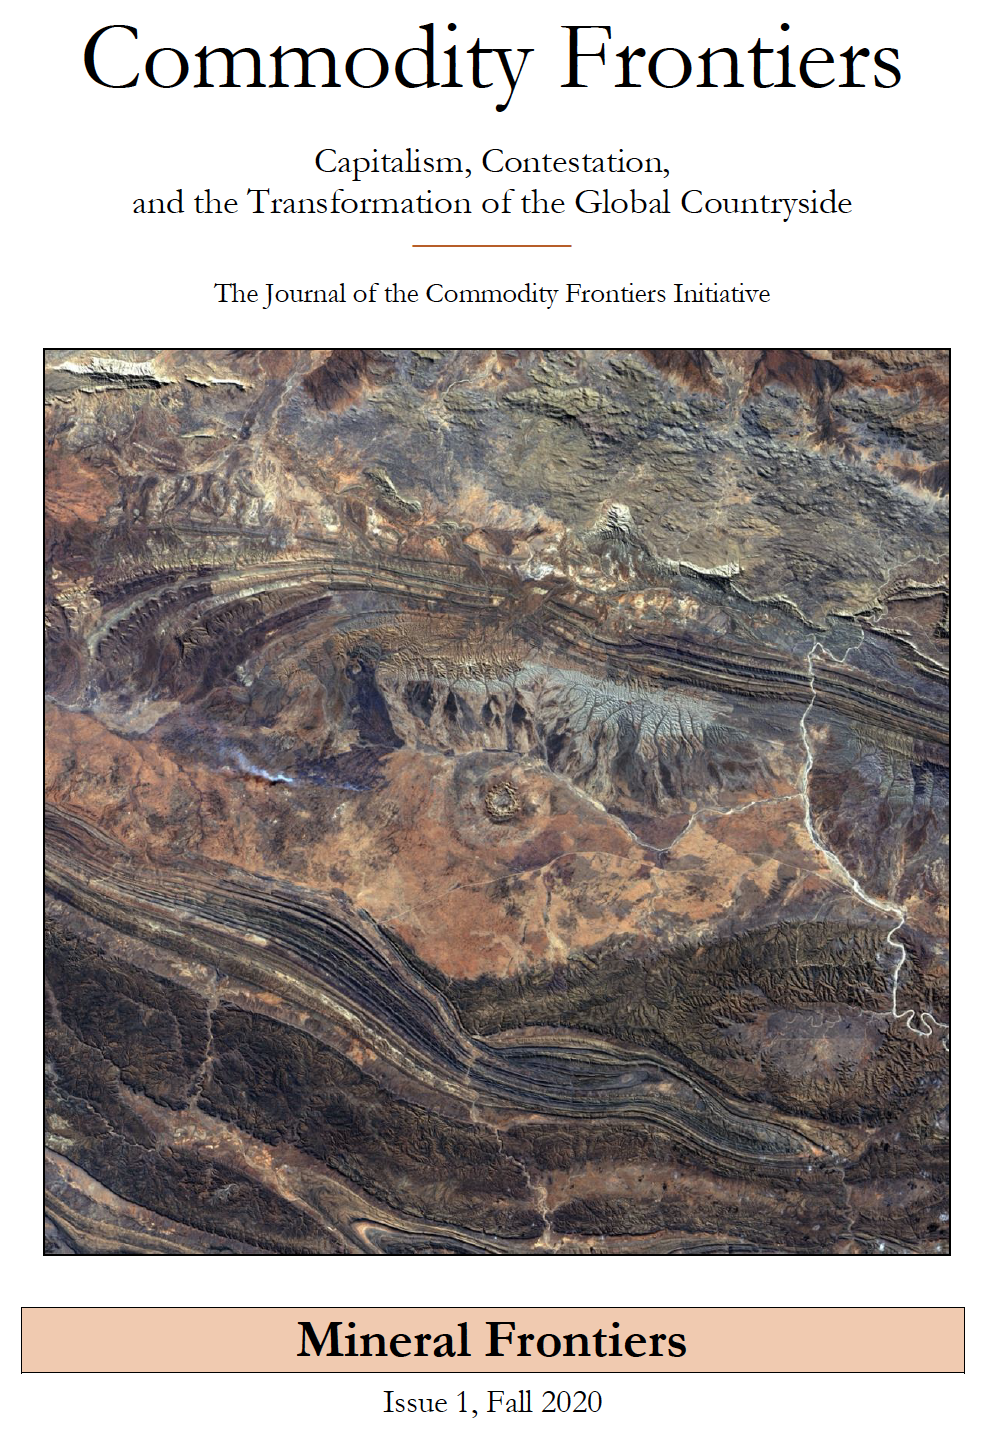 Commodity Frontiers title page